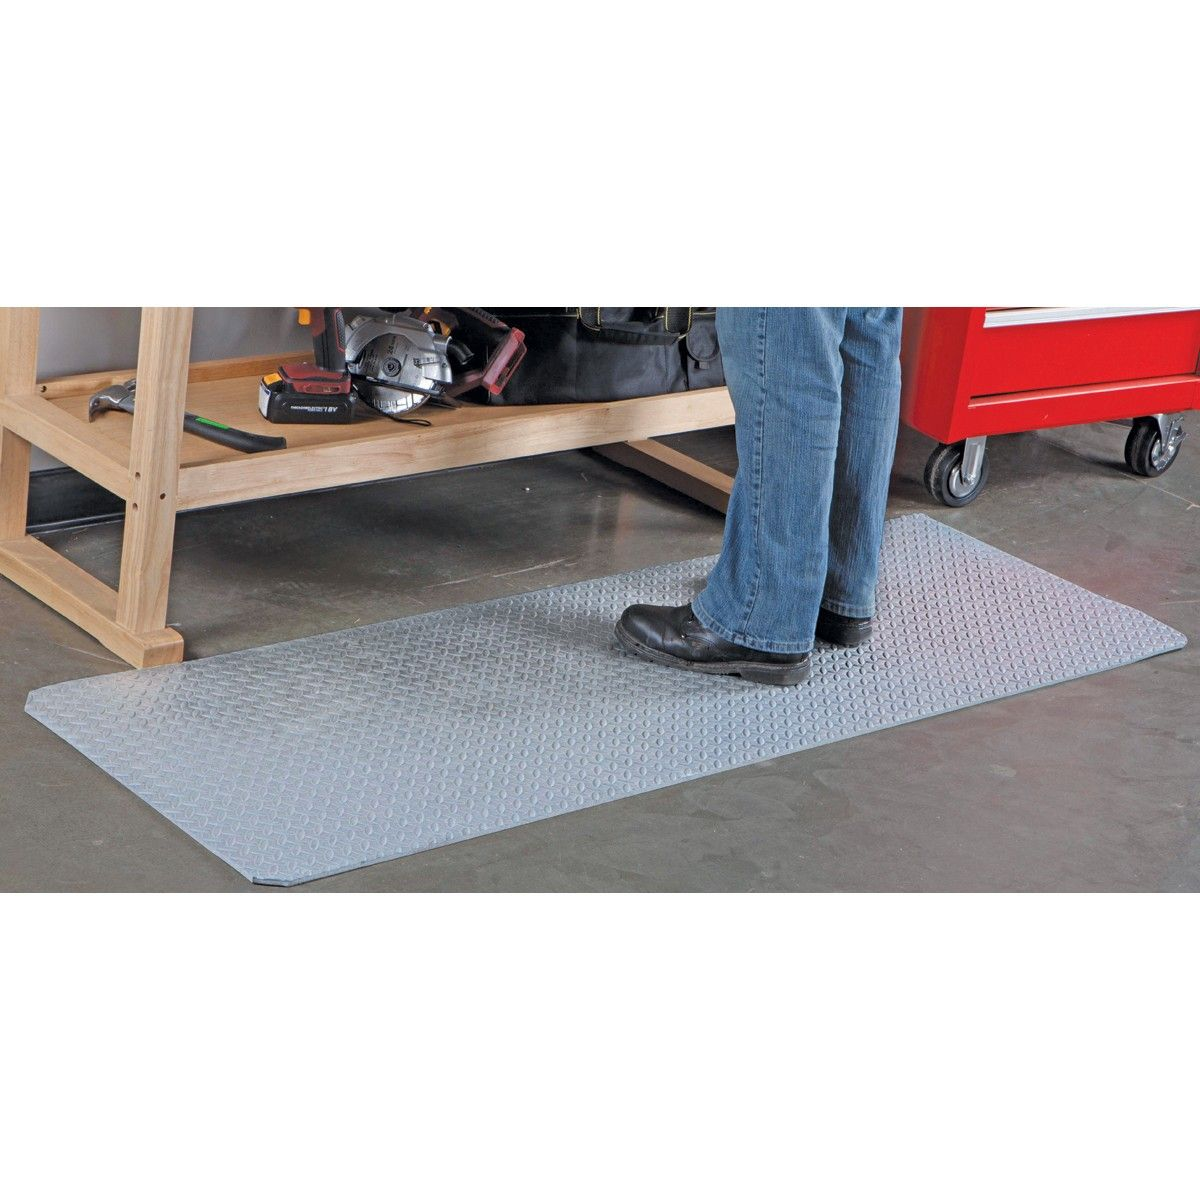 Garage Flooring Harbor Freight Check Out The Anti Fatigue Roll Mat And Work In Comfort Easily